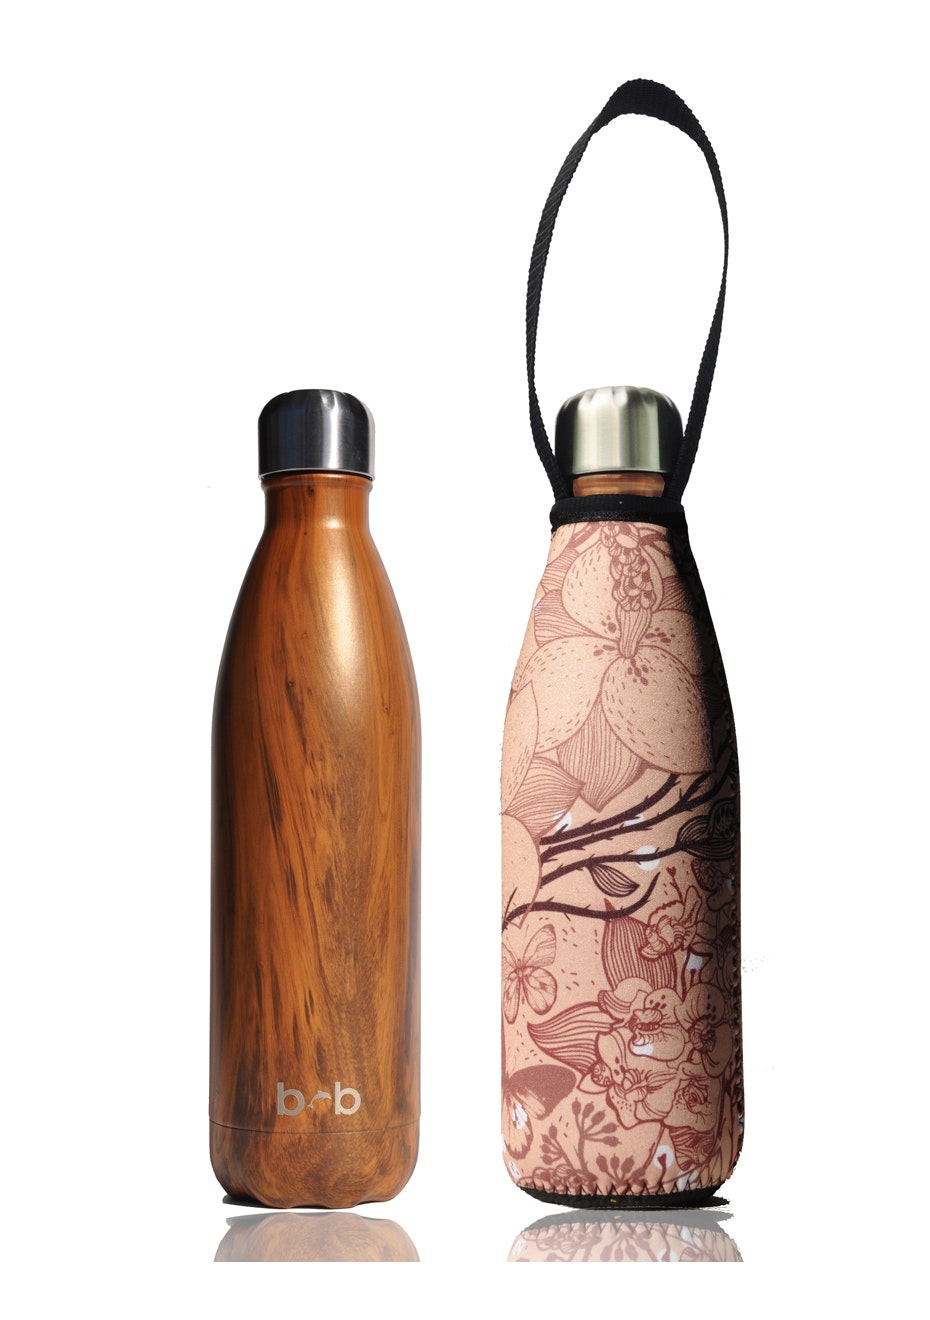 BBBYO - Future Bottle+ Carry Cover (Dragon Print) - 500 ml Woodgrain